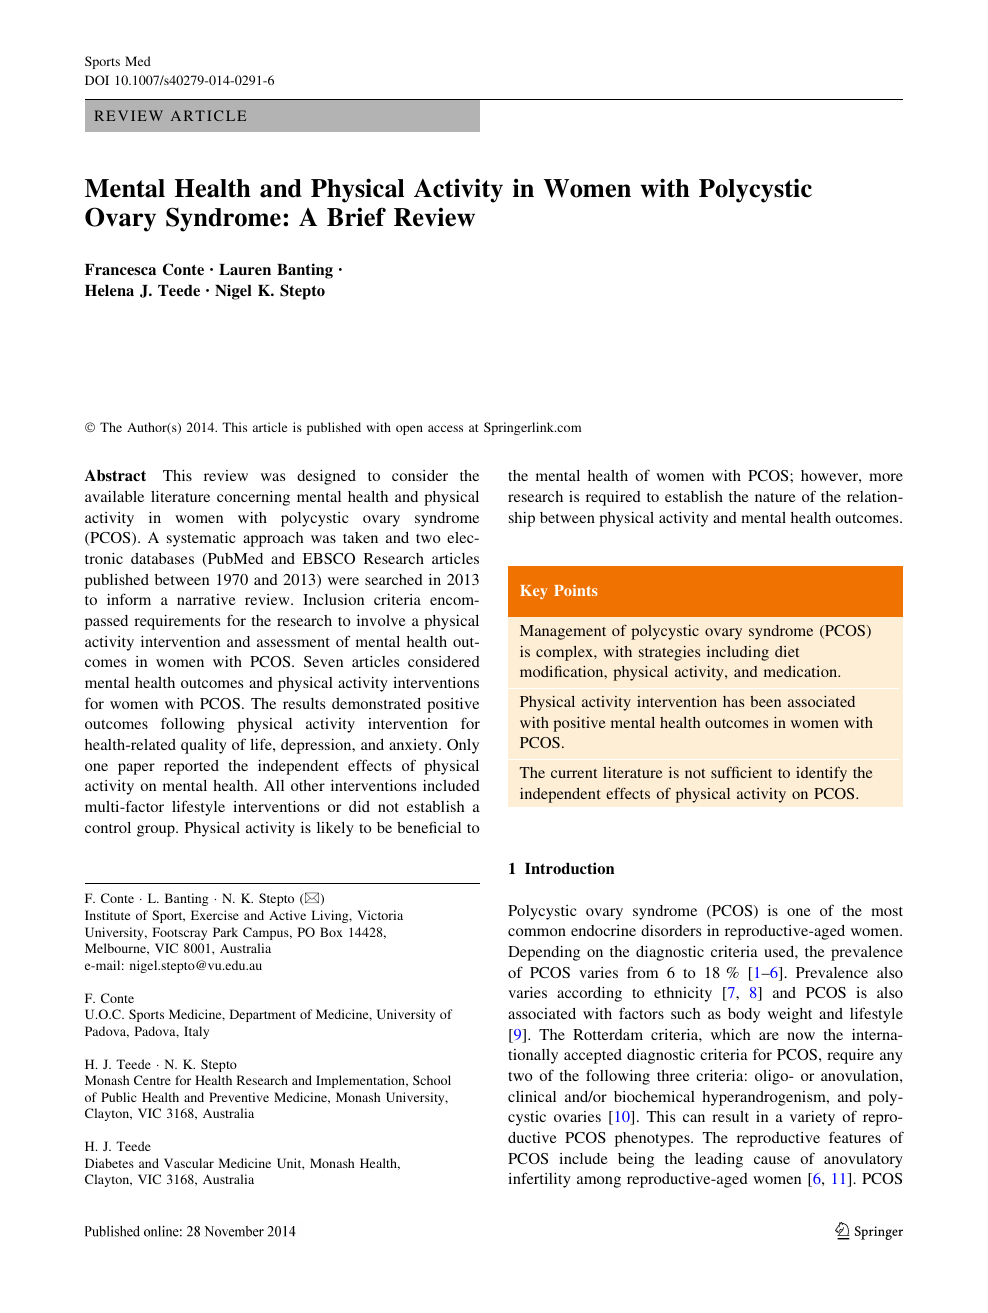 Mental Health and Physical Activity in Women with Polycystic